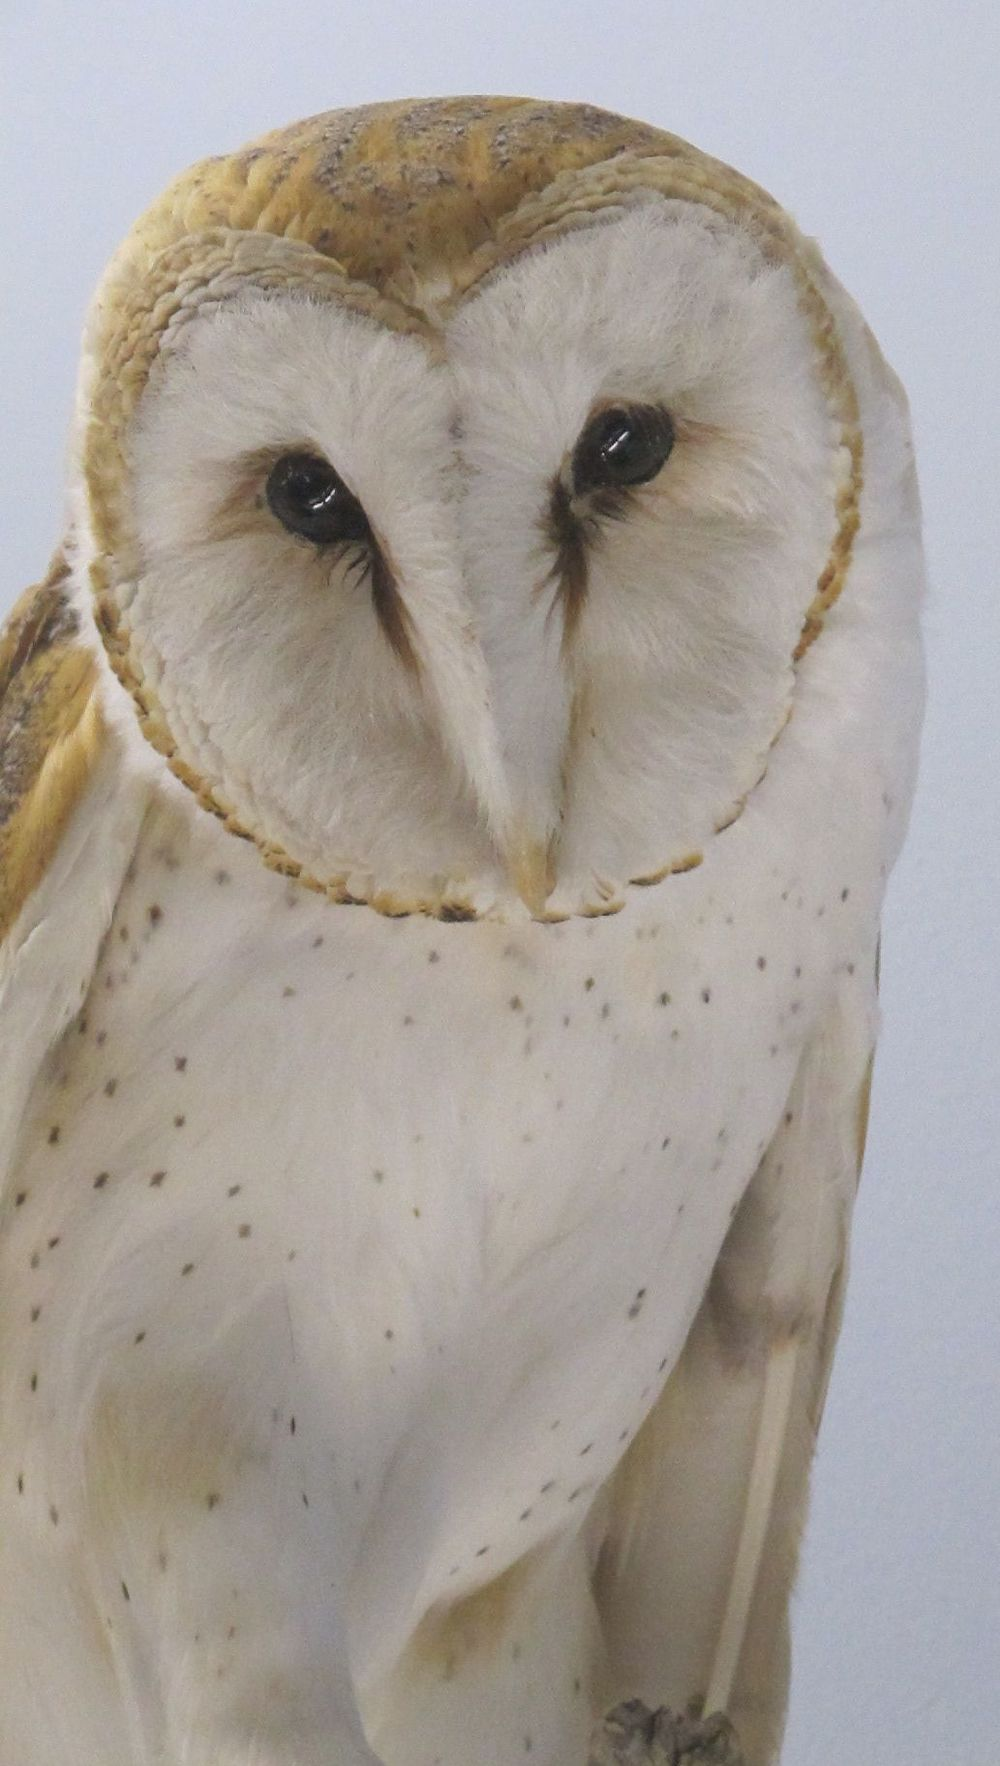 A barn owl specimen from the Malheur refuge's wildlife display.